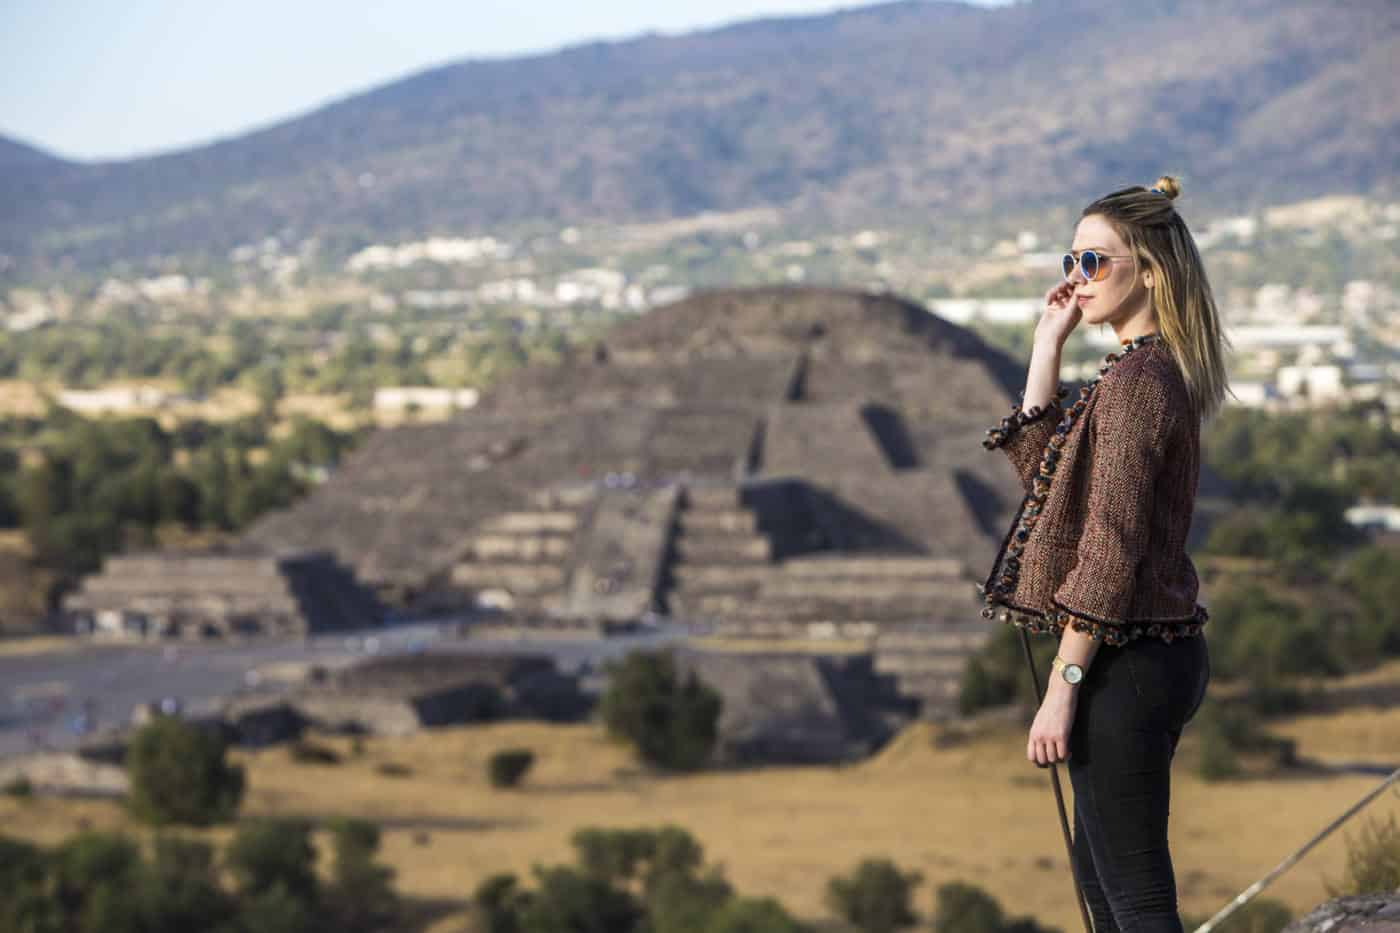 Teotihuacan temples outside Mexico City, Mexico